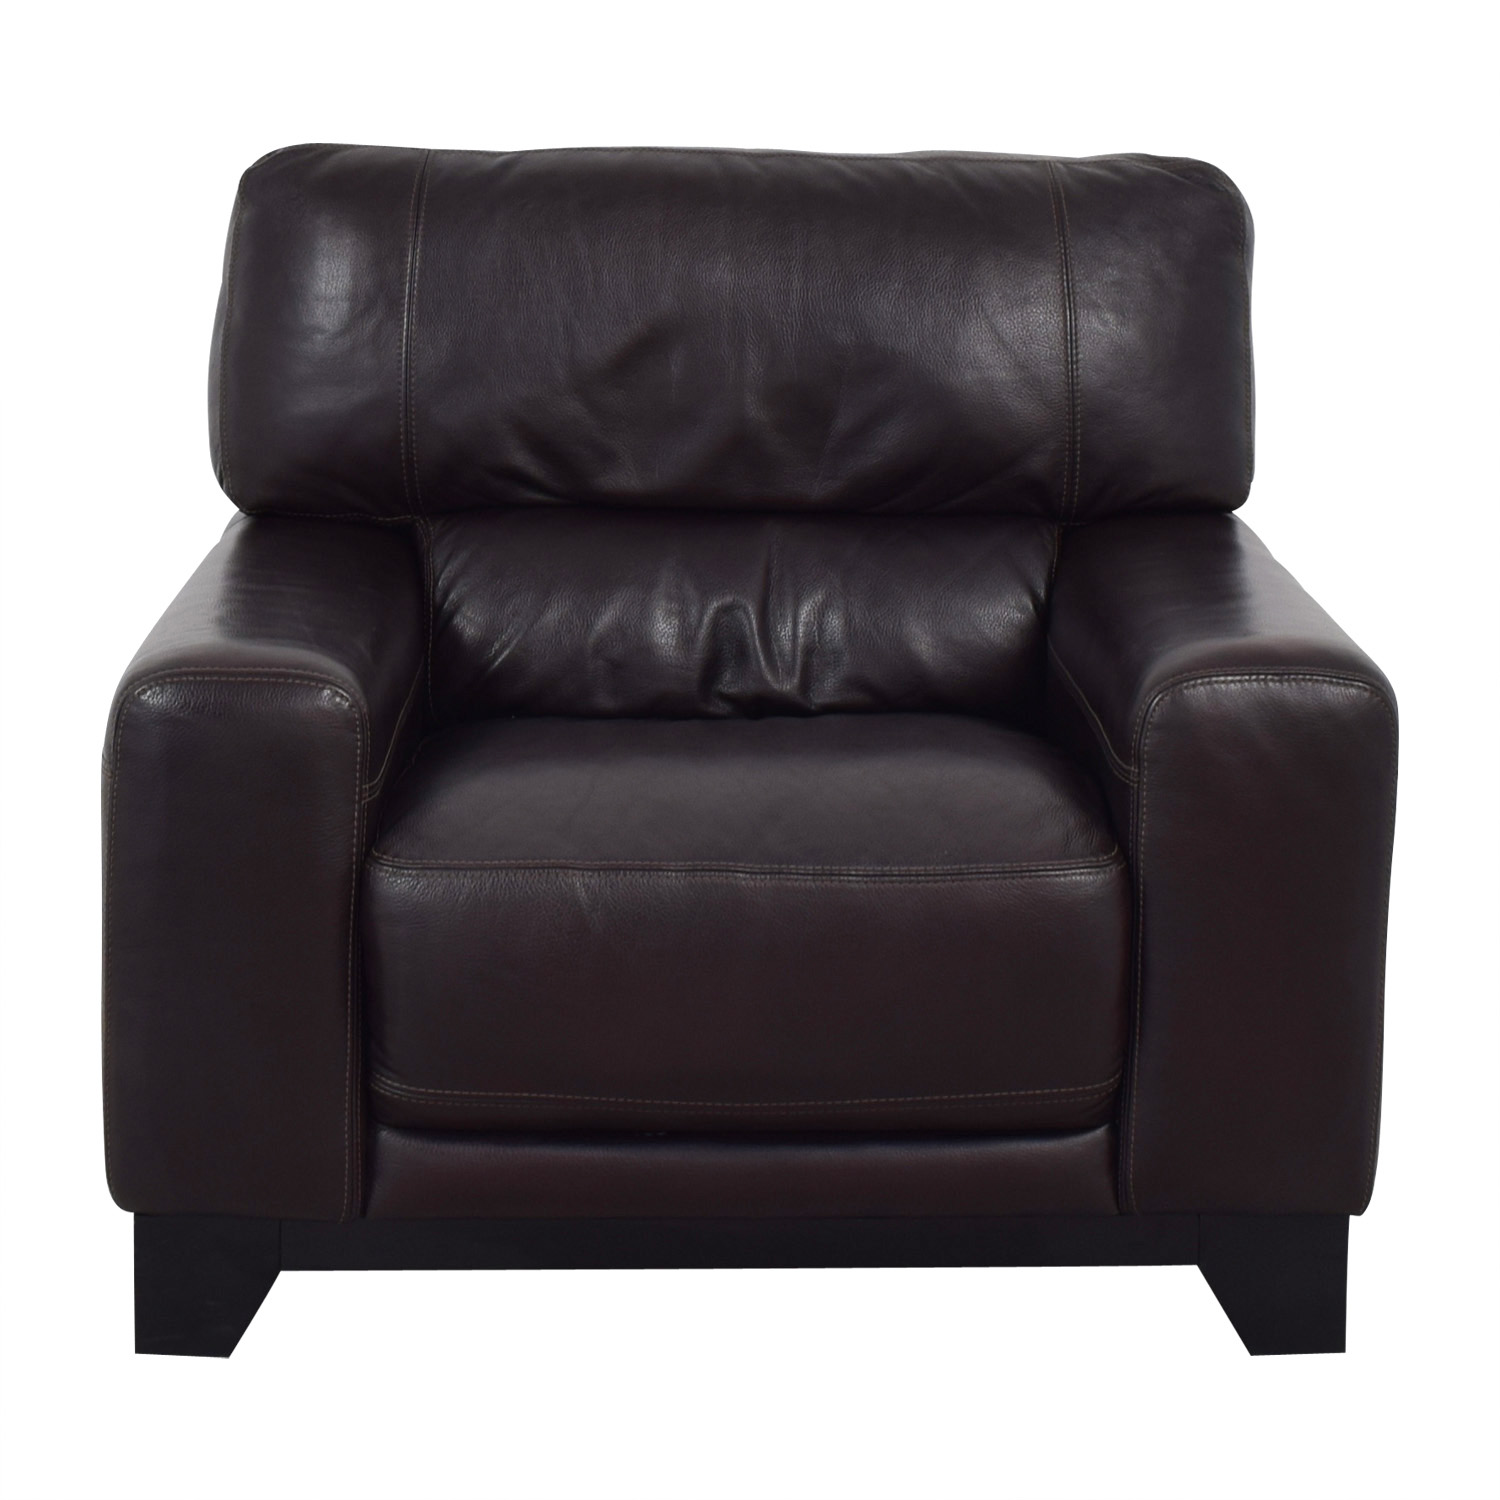 Macy's Macy's Brown Accent Chair price